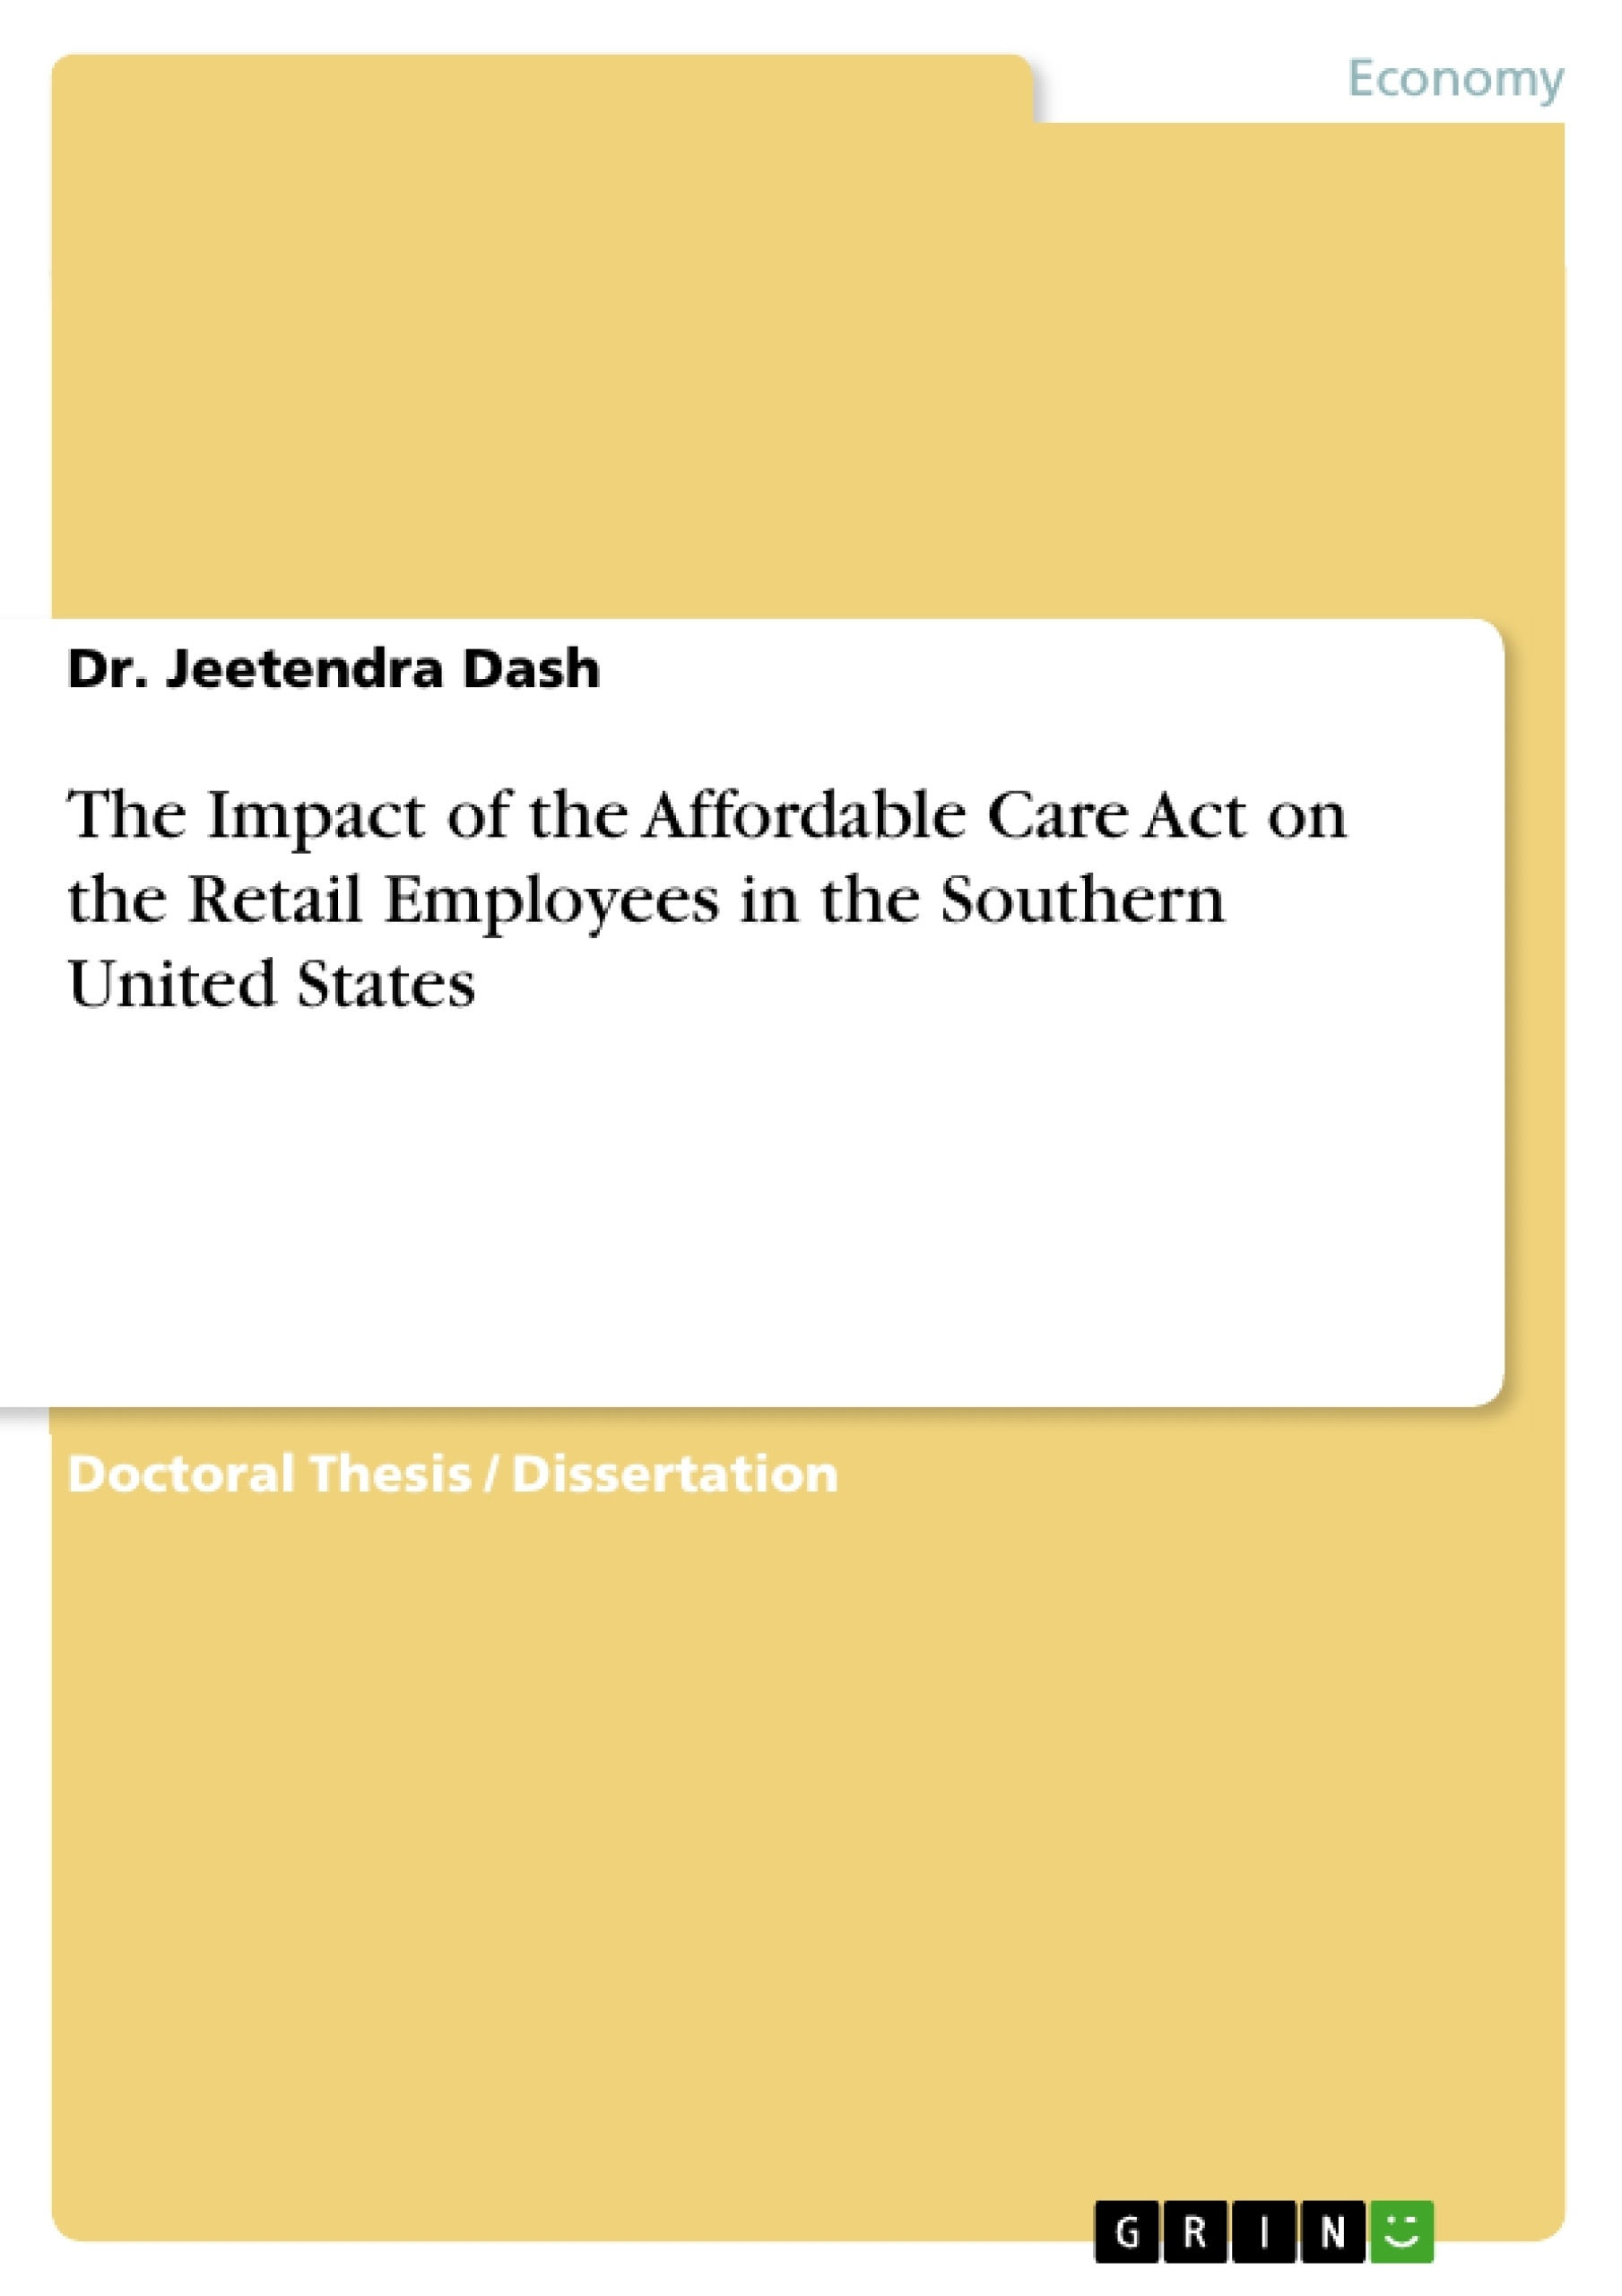 Title: The Impact of the Affordable Care Act on the Retail Employees in the Southern United States